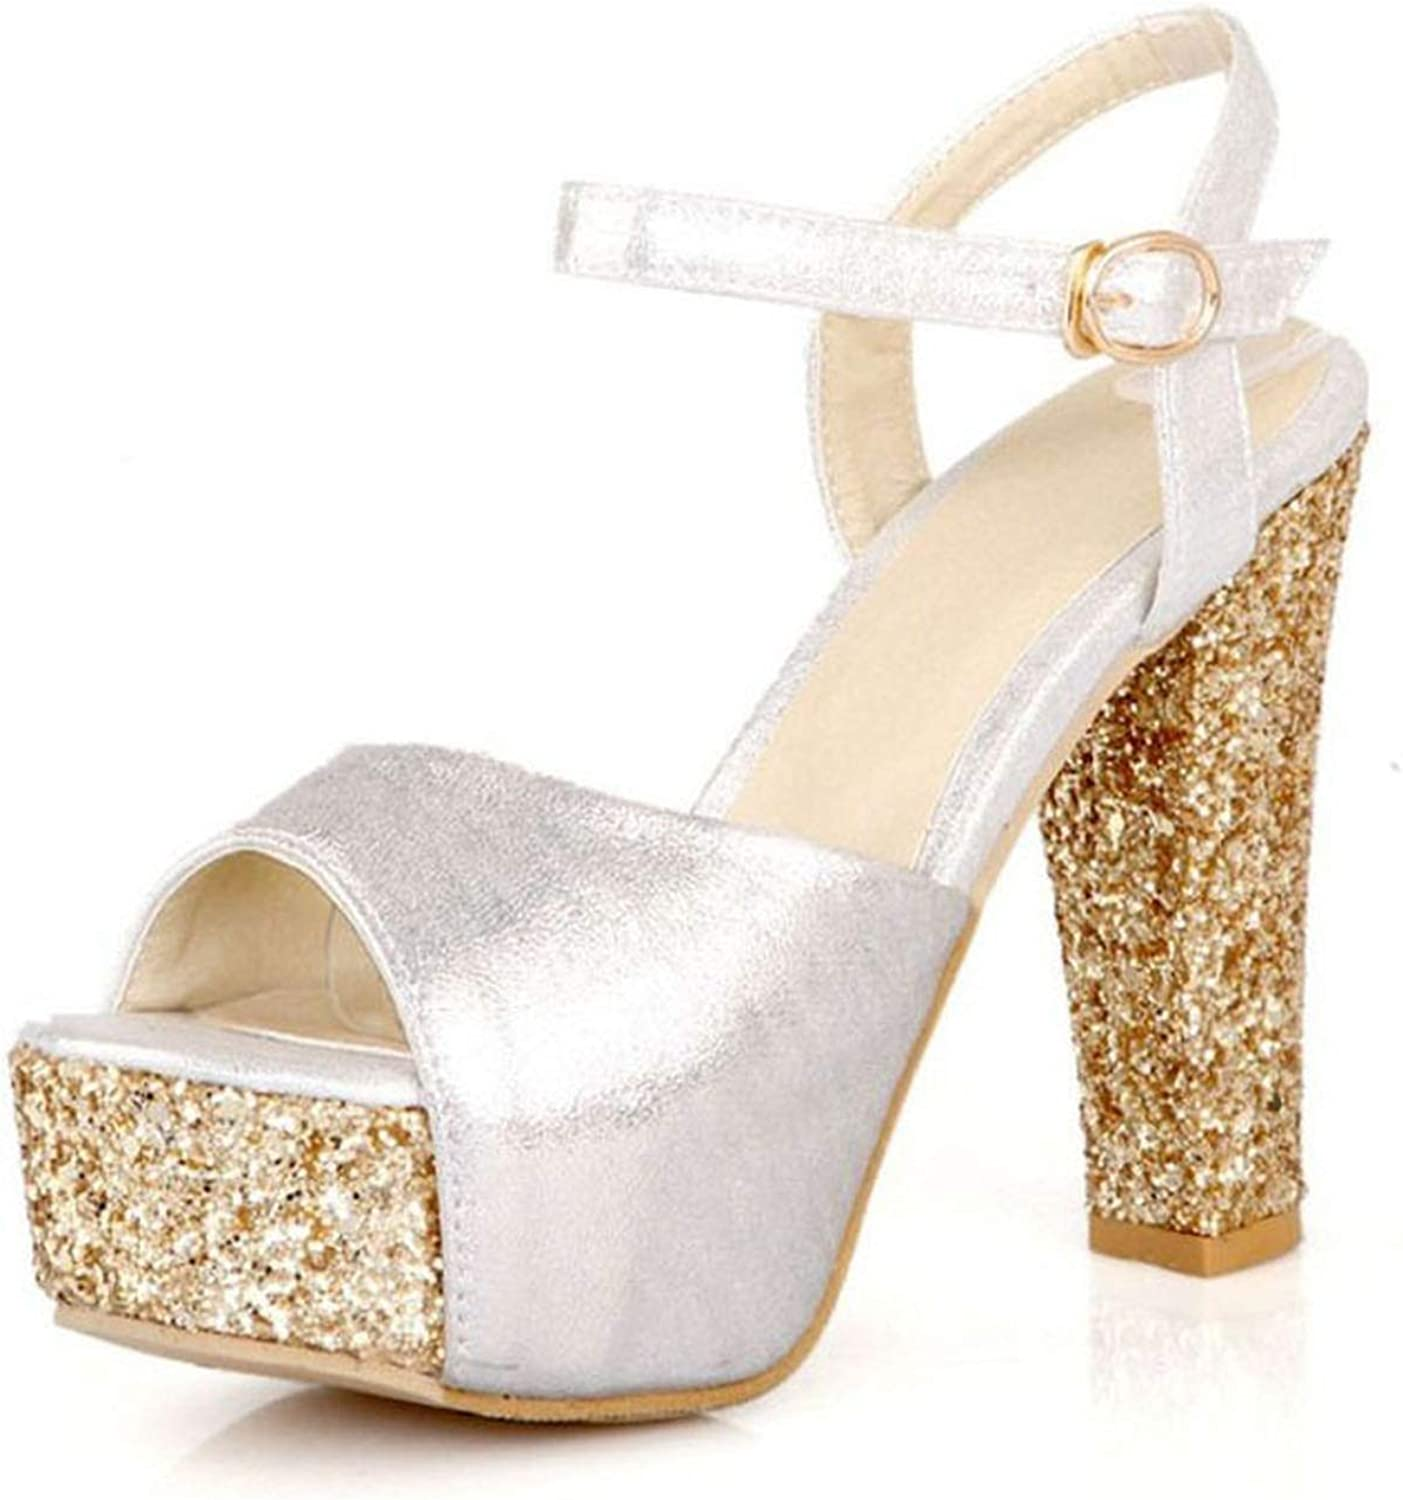 Sexy Bling Sandals Ankle Strap Platform Glitters High Heels Summer shoes Party Wedding Footwear